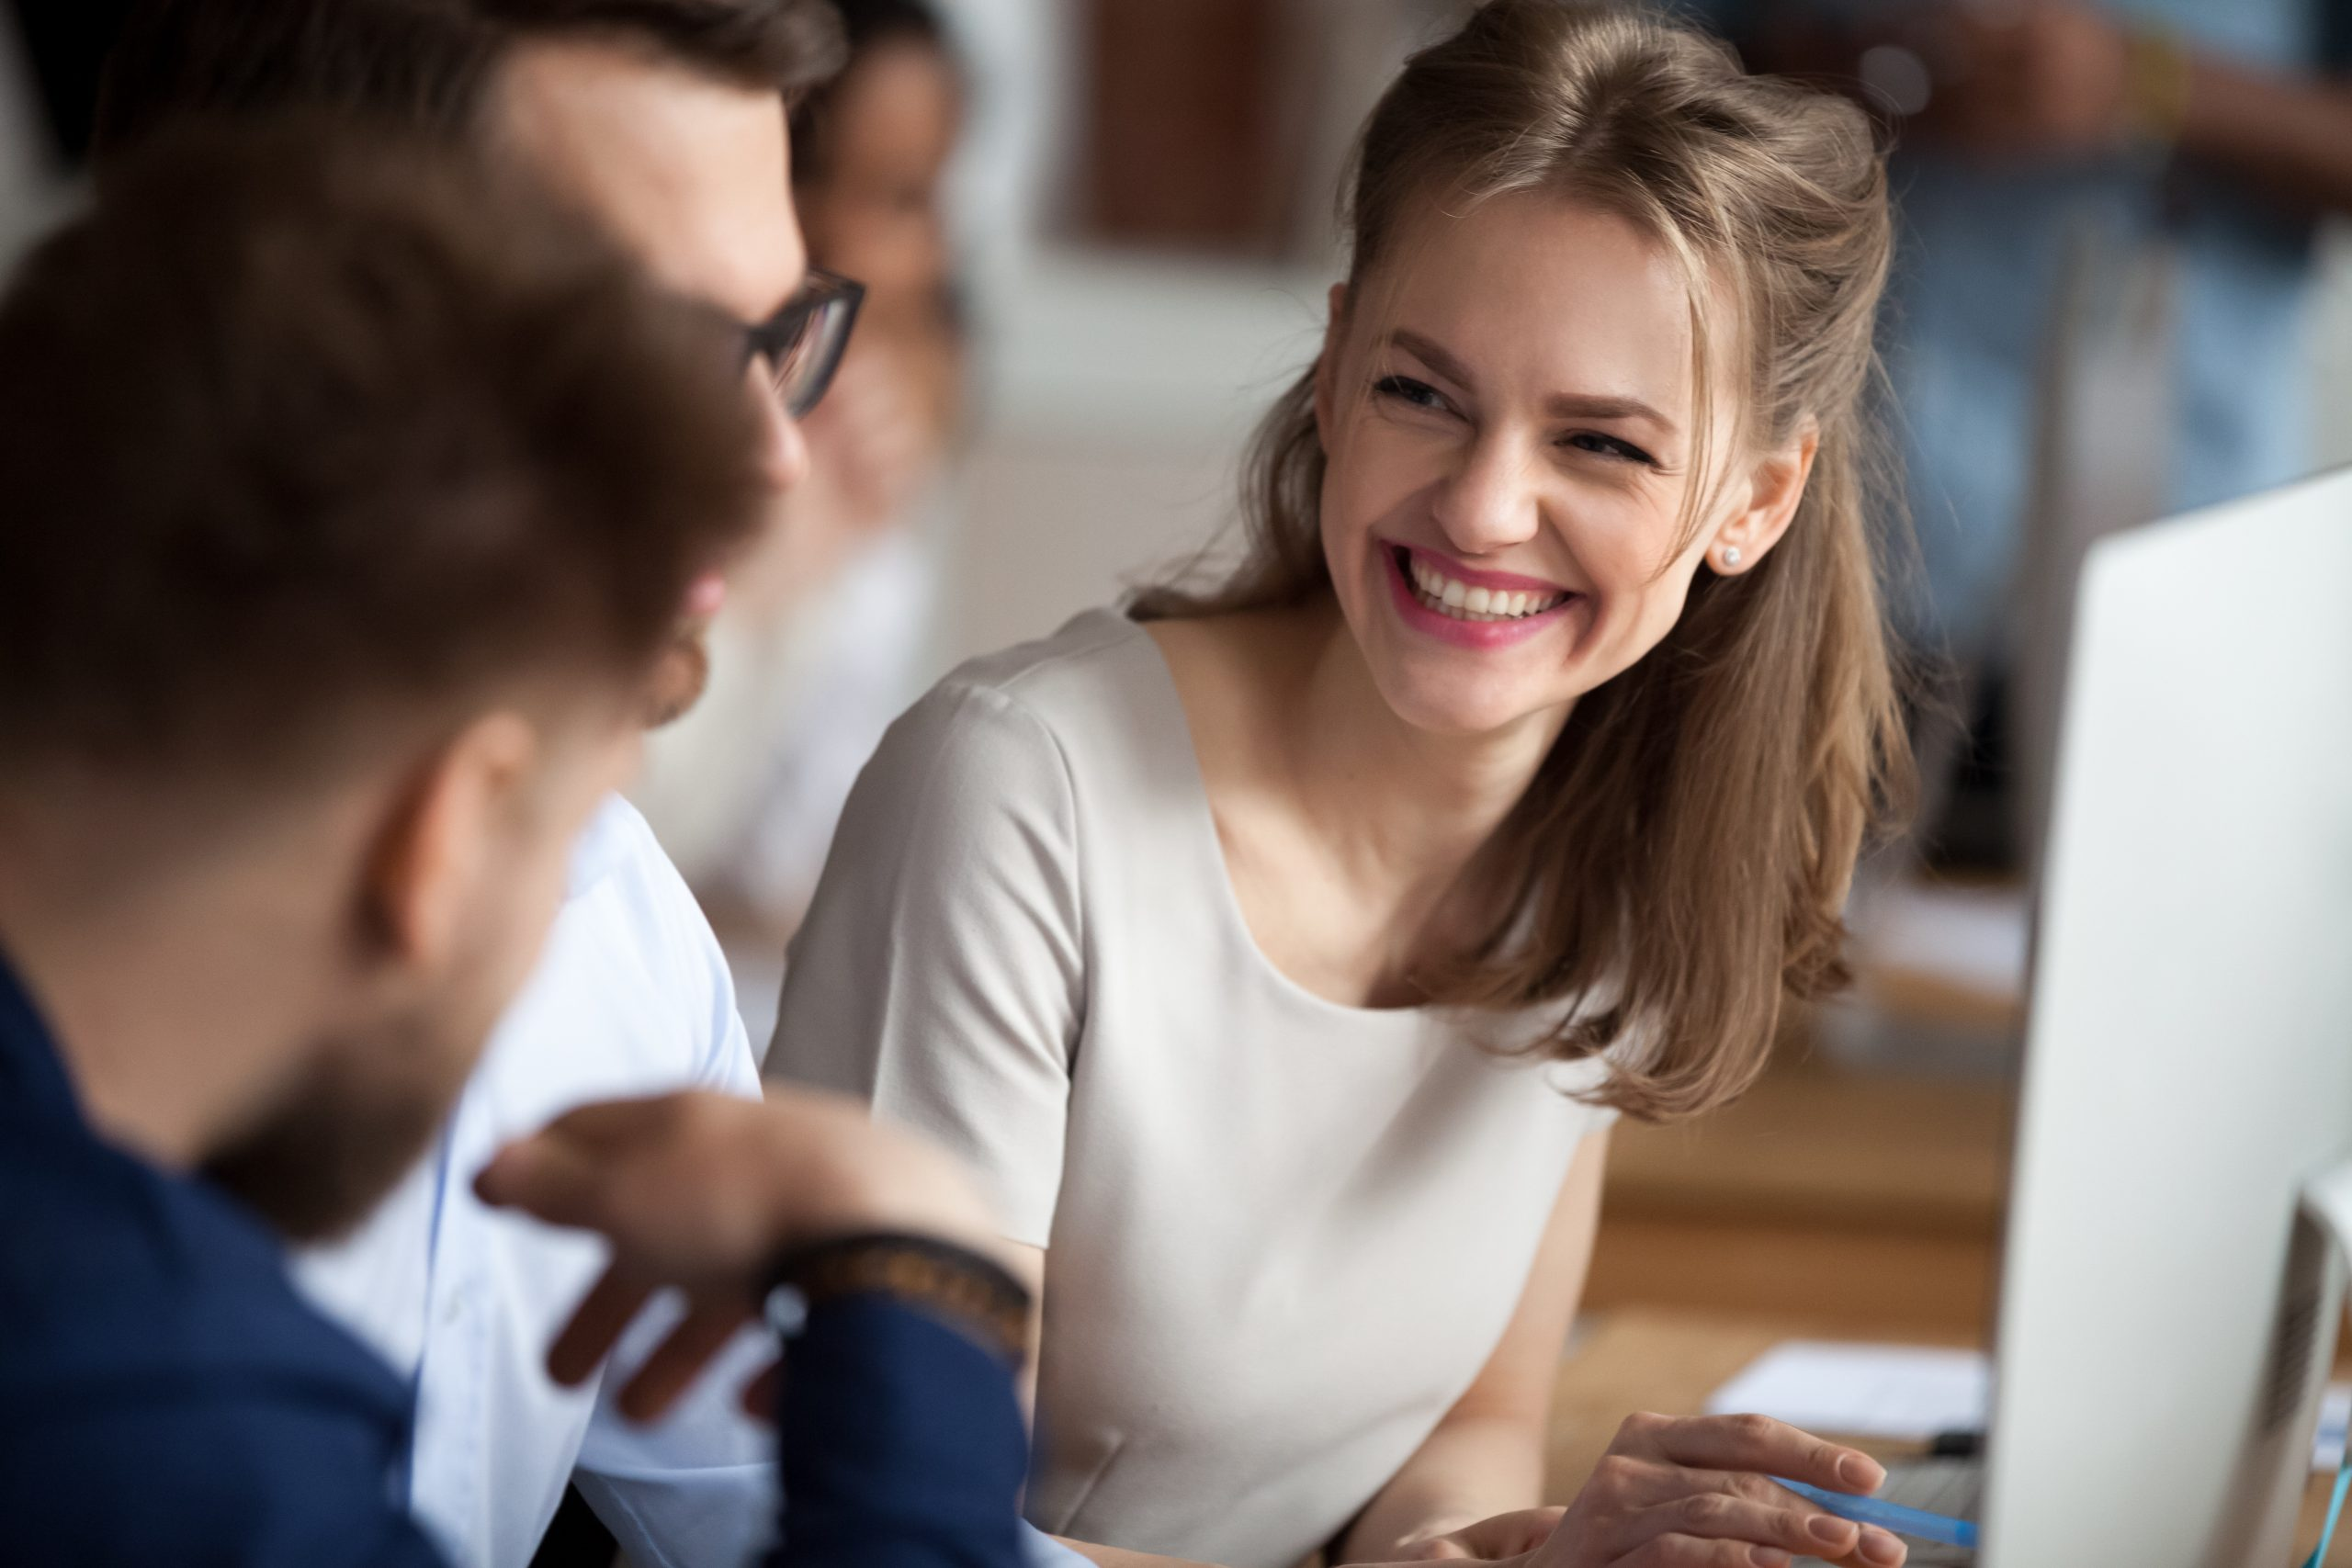 Smiling young woman talking with colleagues at shared workplace